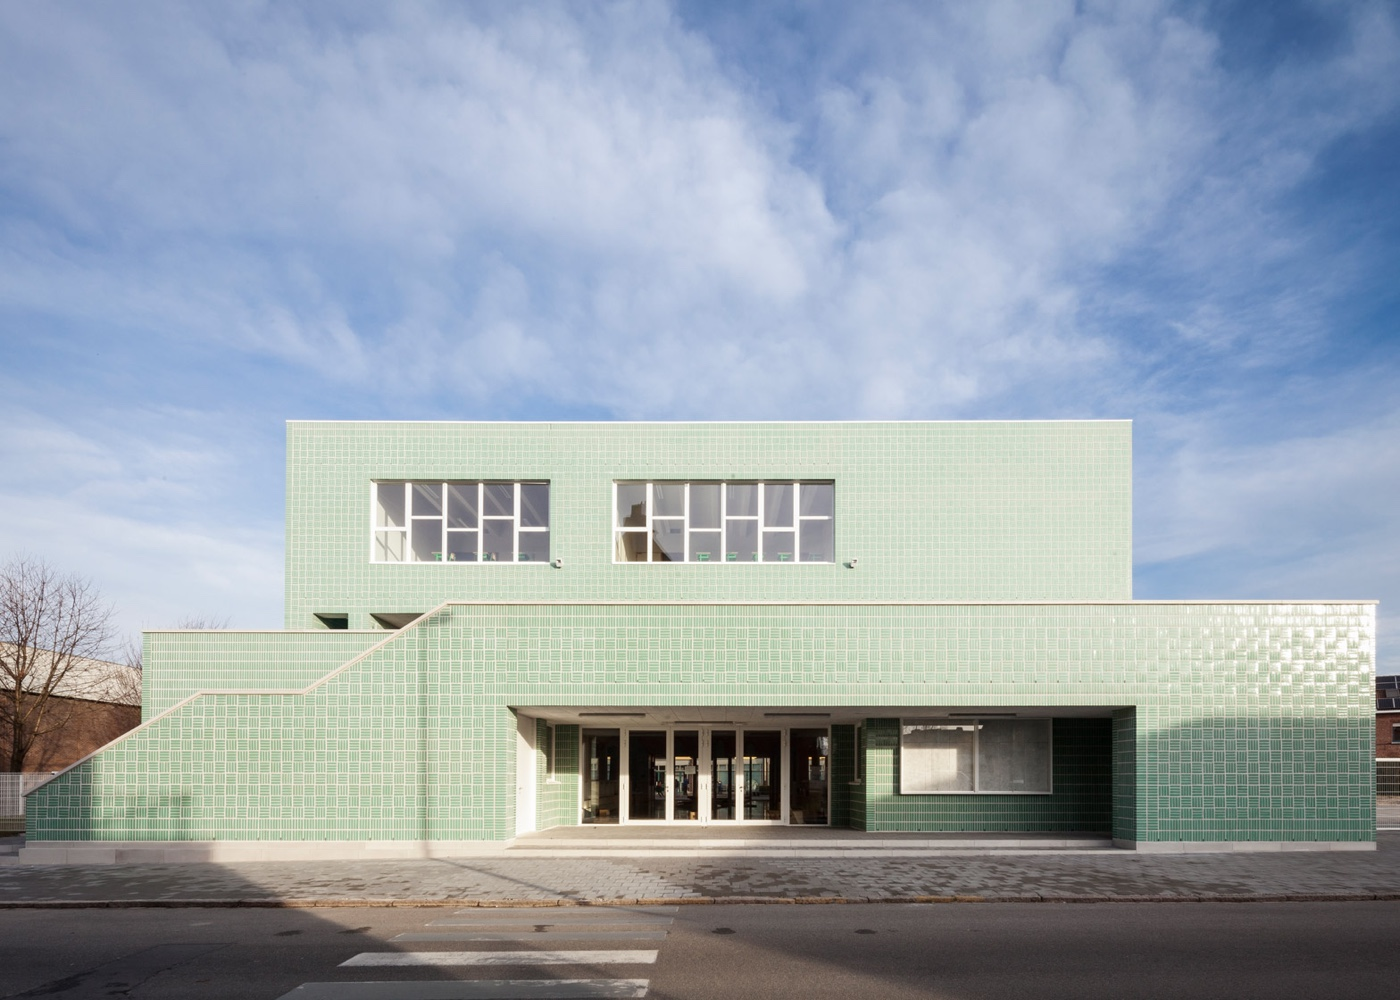 Primary school block in Belgium, designed by Areal Architecten.